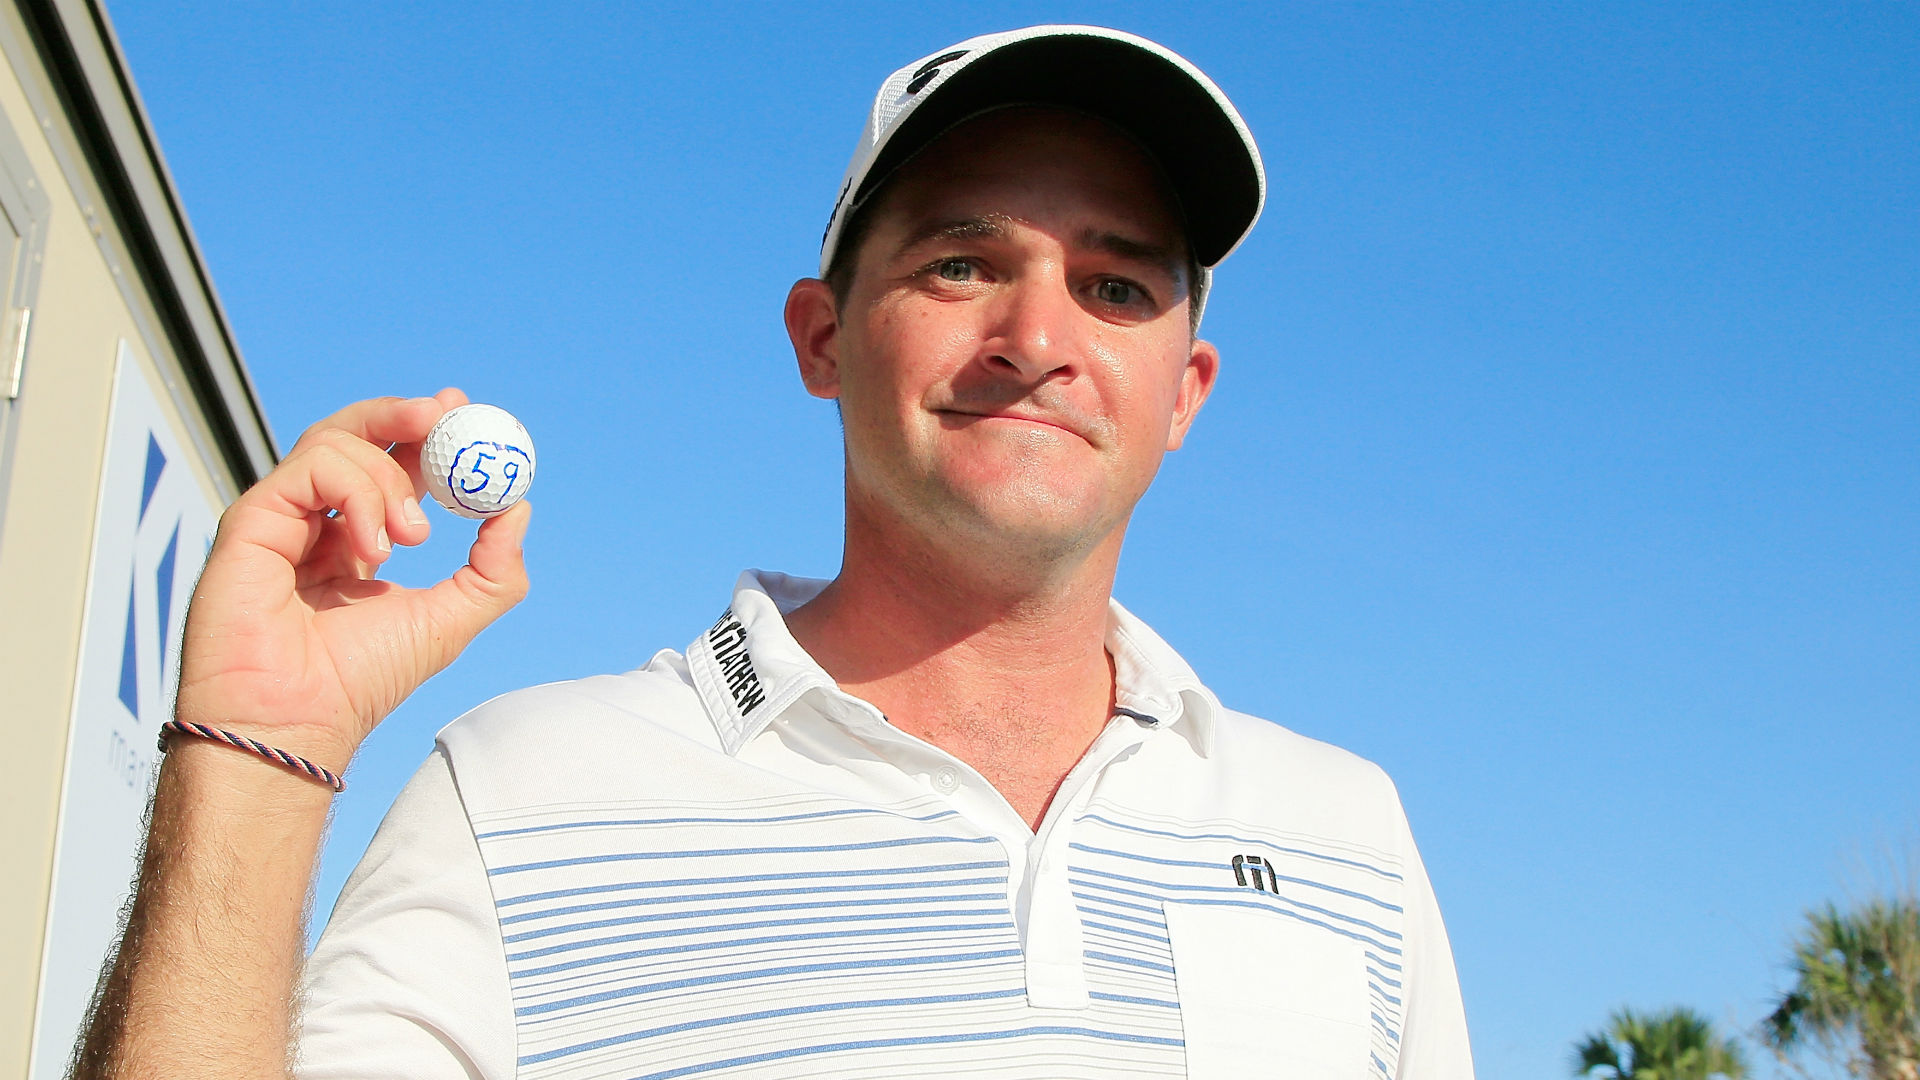 Sam Saunders shoots 59 in 2017 Web.com Tour Championship first round